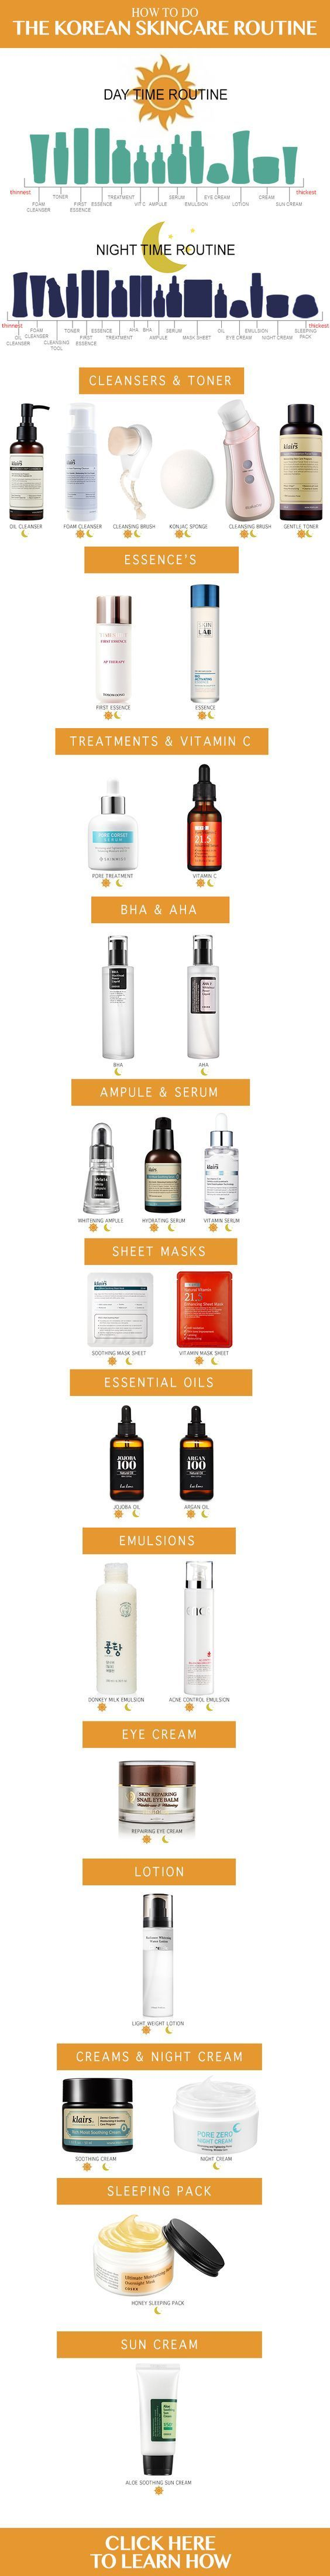 WISHTREND GLAM - http://www.wishtrend.com/glam/how-to-do-the-korean-skincare-routine/